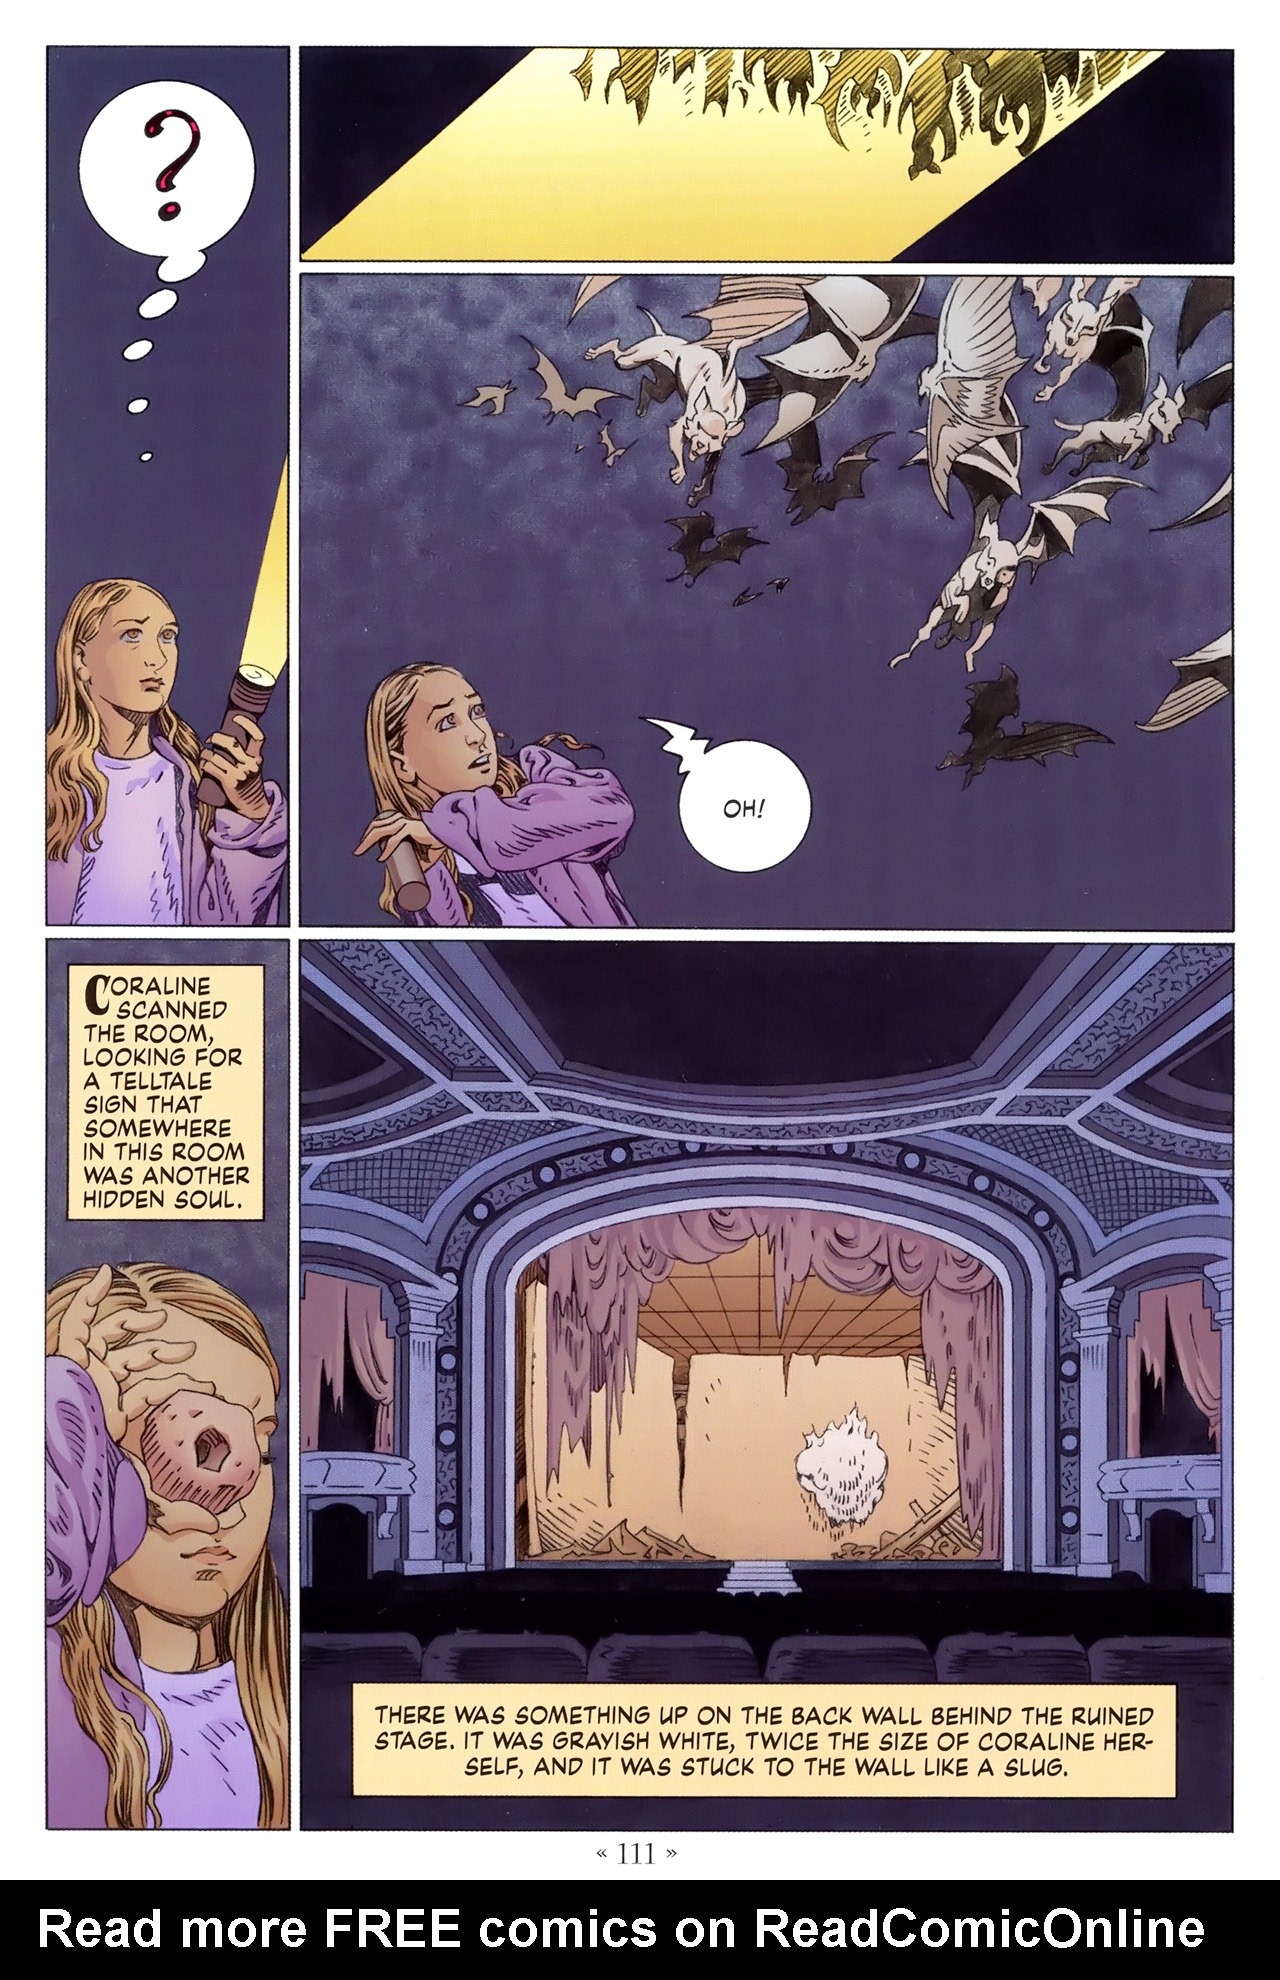 Read online Coraline comic -  Issue #1 - 117